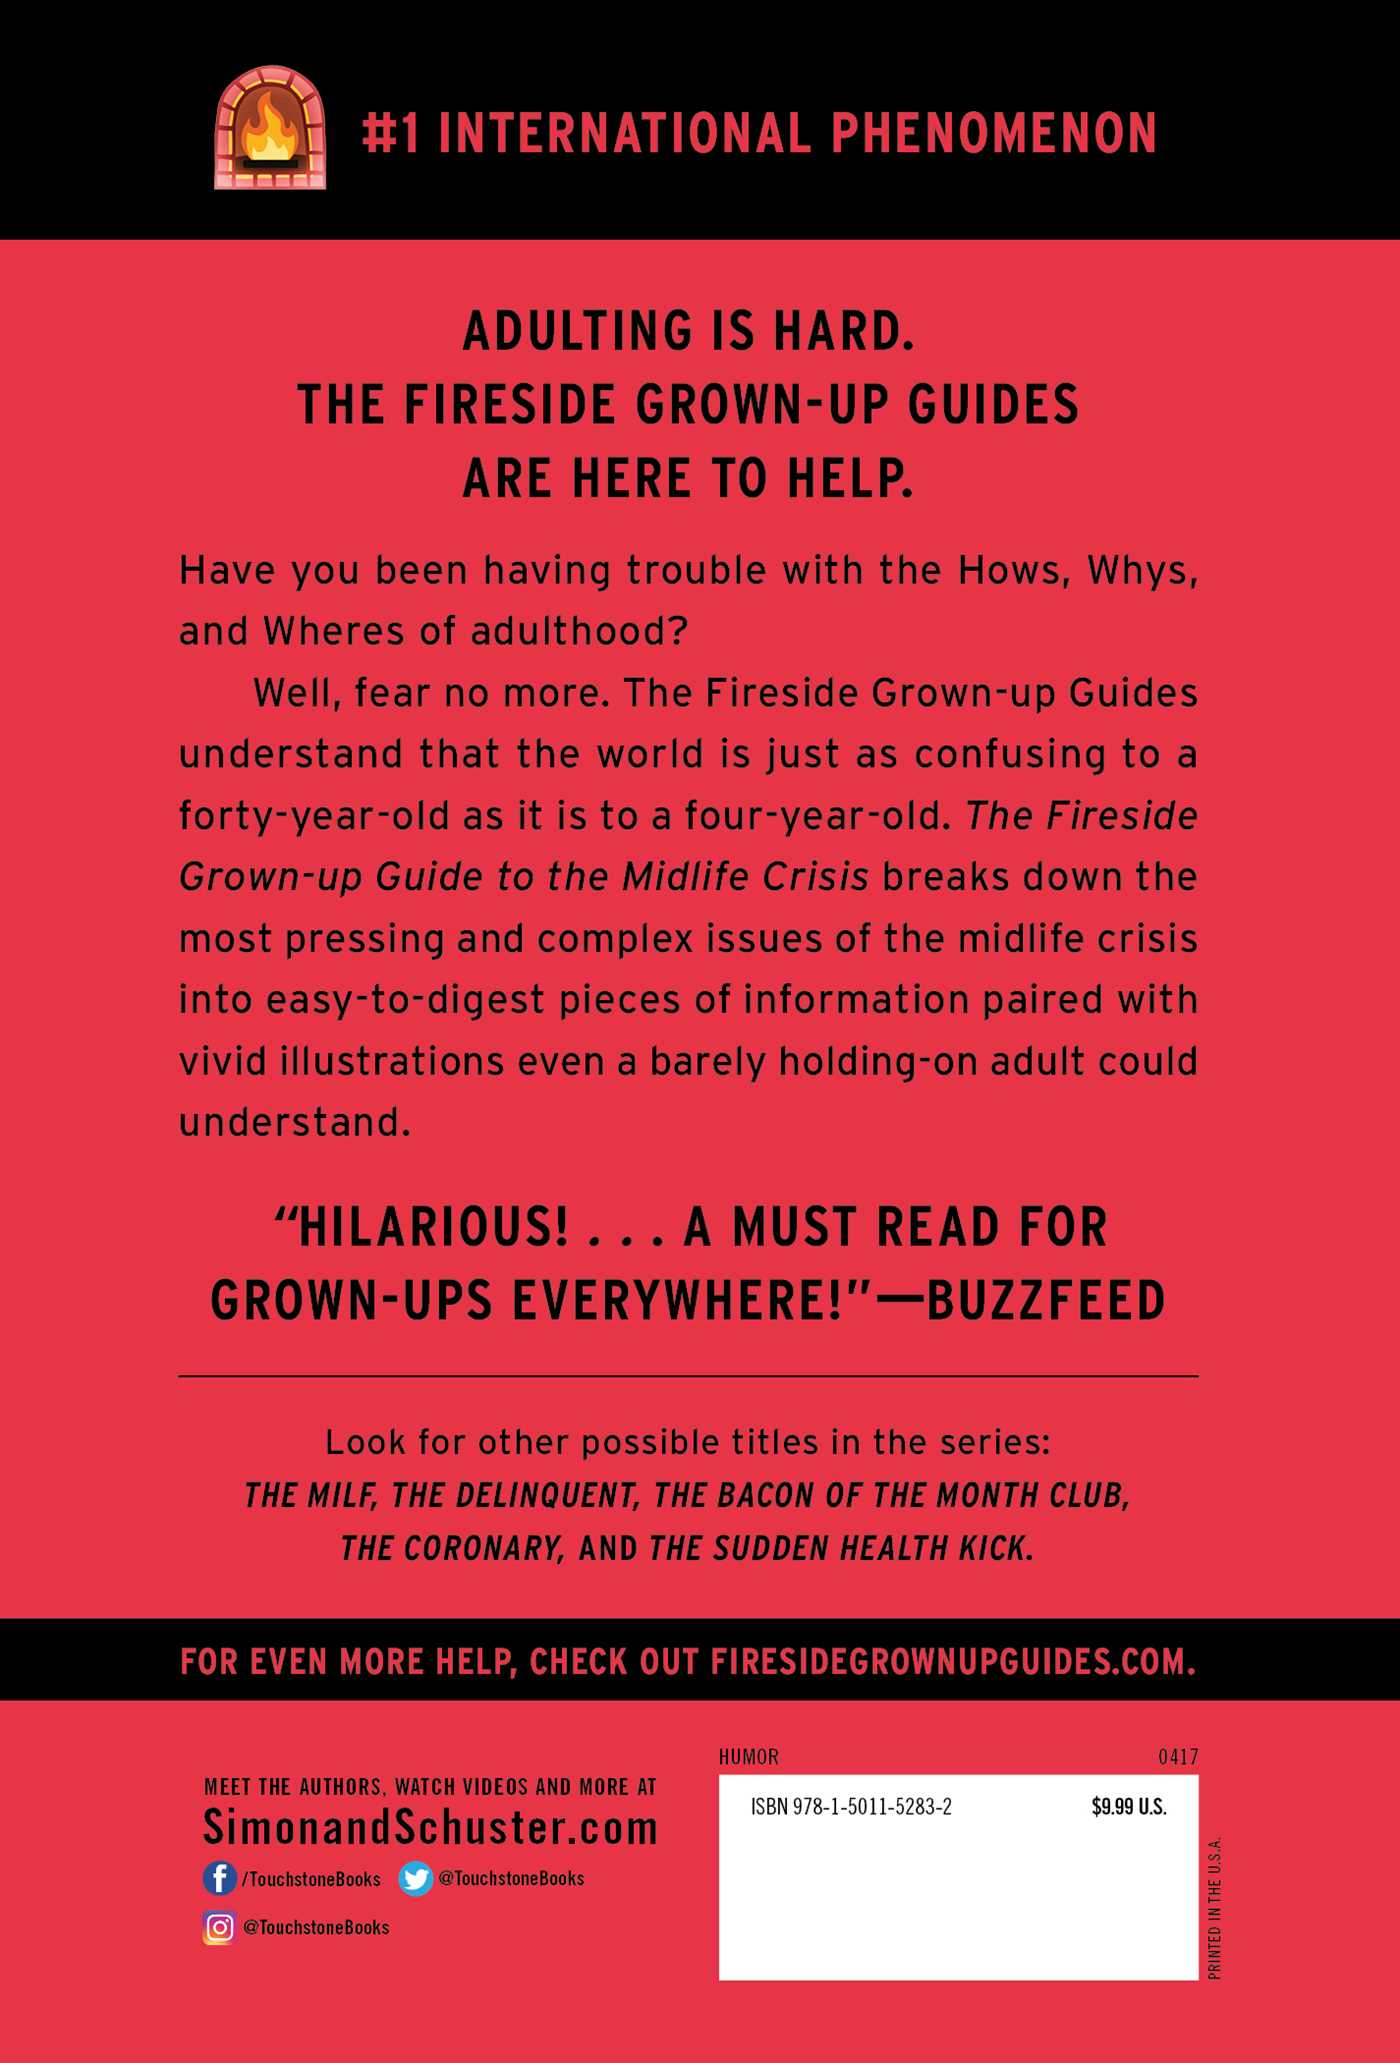 The fireside grown up guide to the midlife crisis 9781501152832 hr back